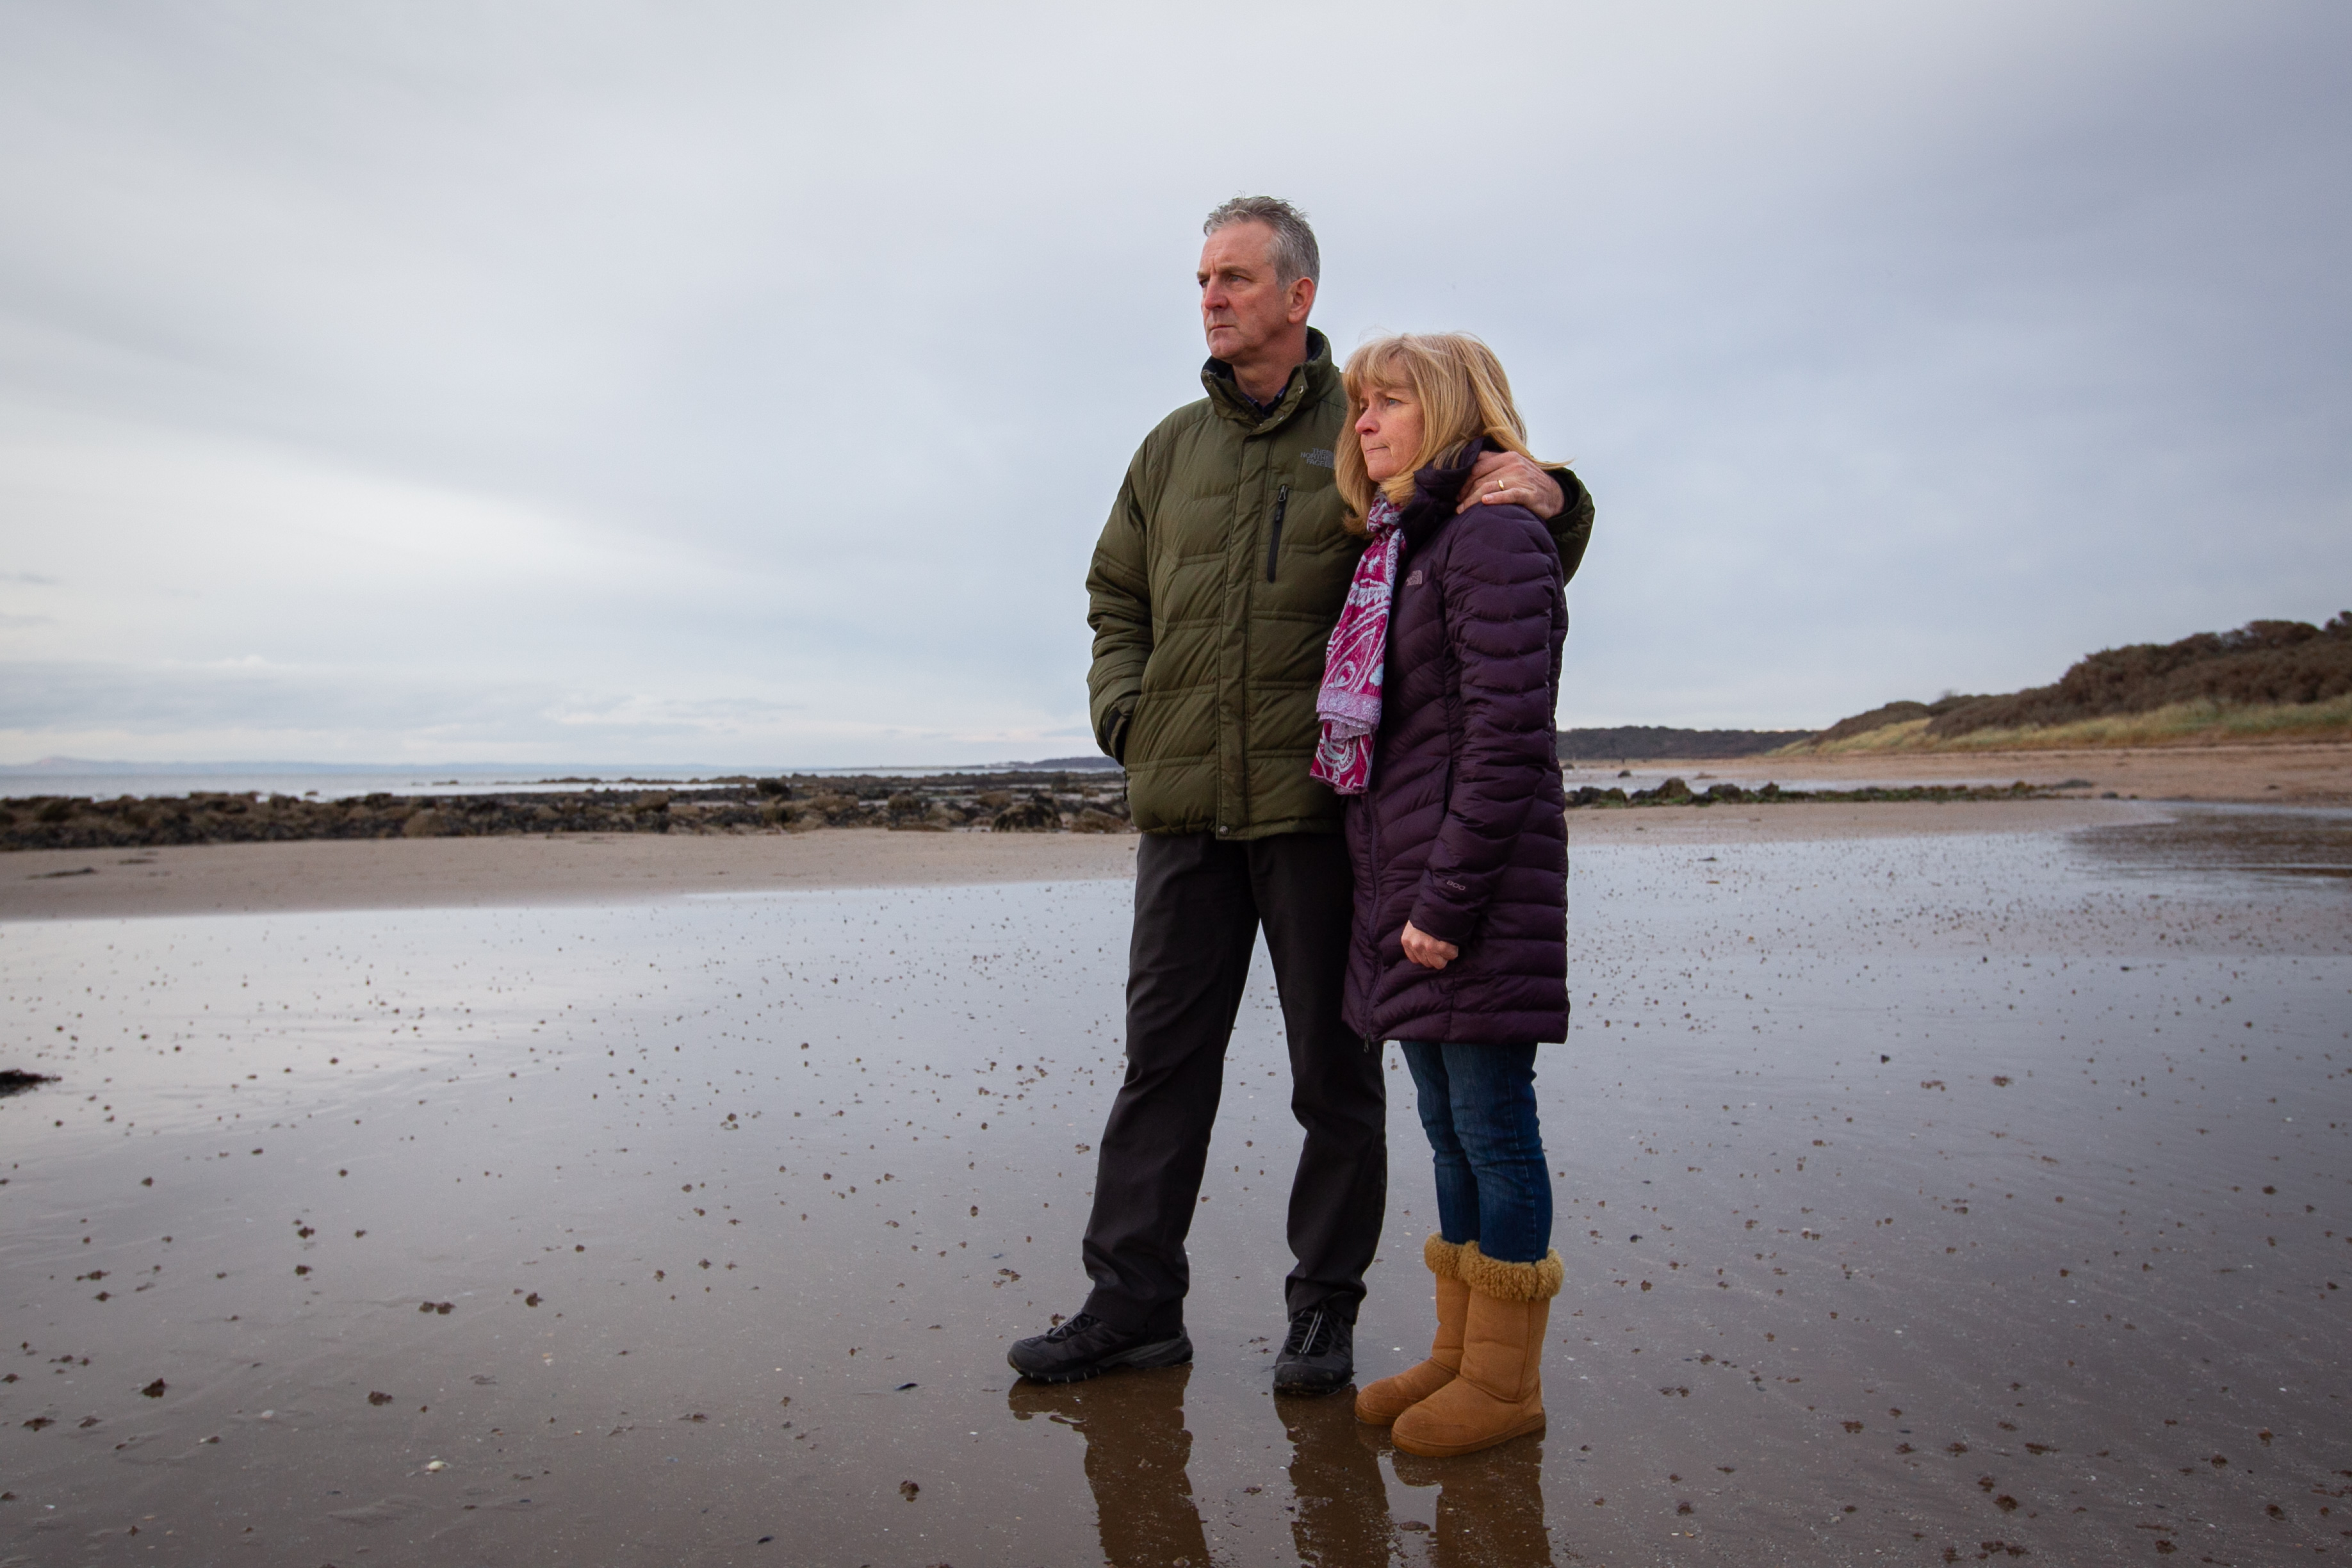 The parents of Scott Calder, the man who died after leaving Oktoberfest at Gosford House in Longniddry, and who's body was found in the early hours on Longniddry beach. (Andrew Cawley)